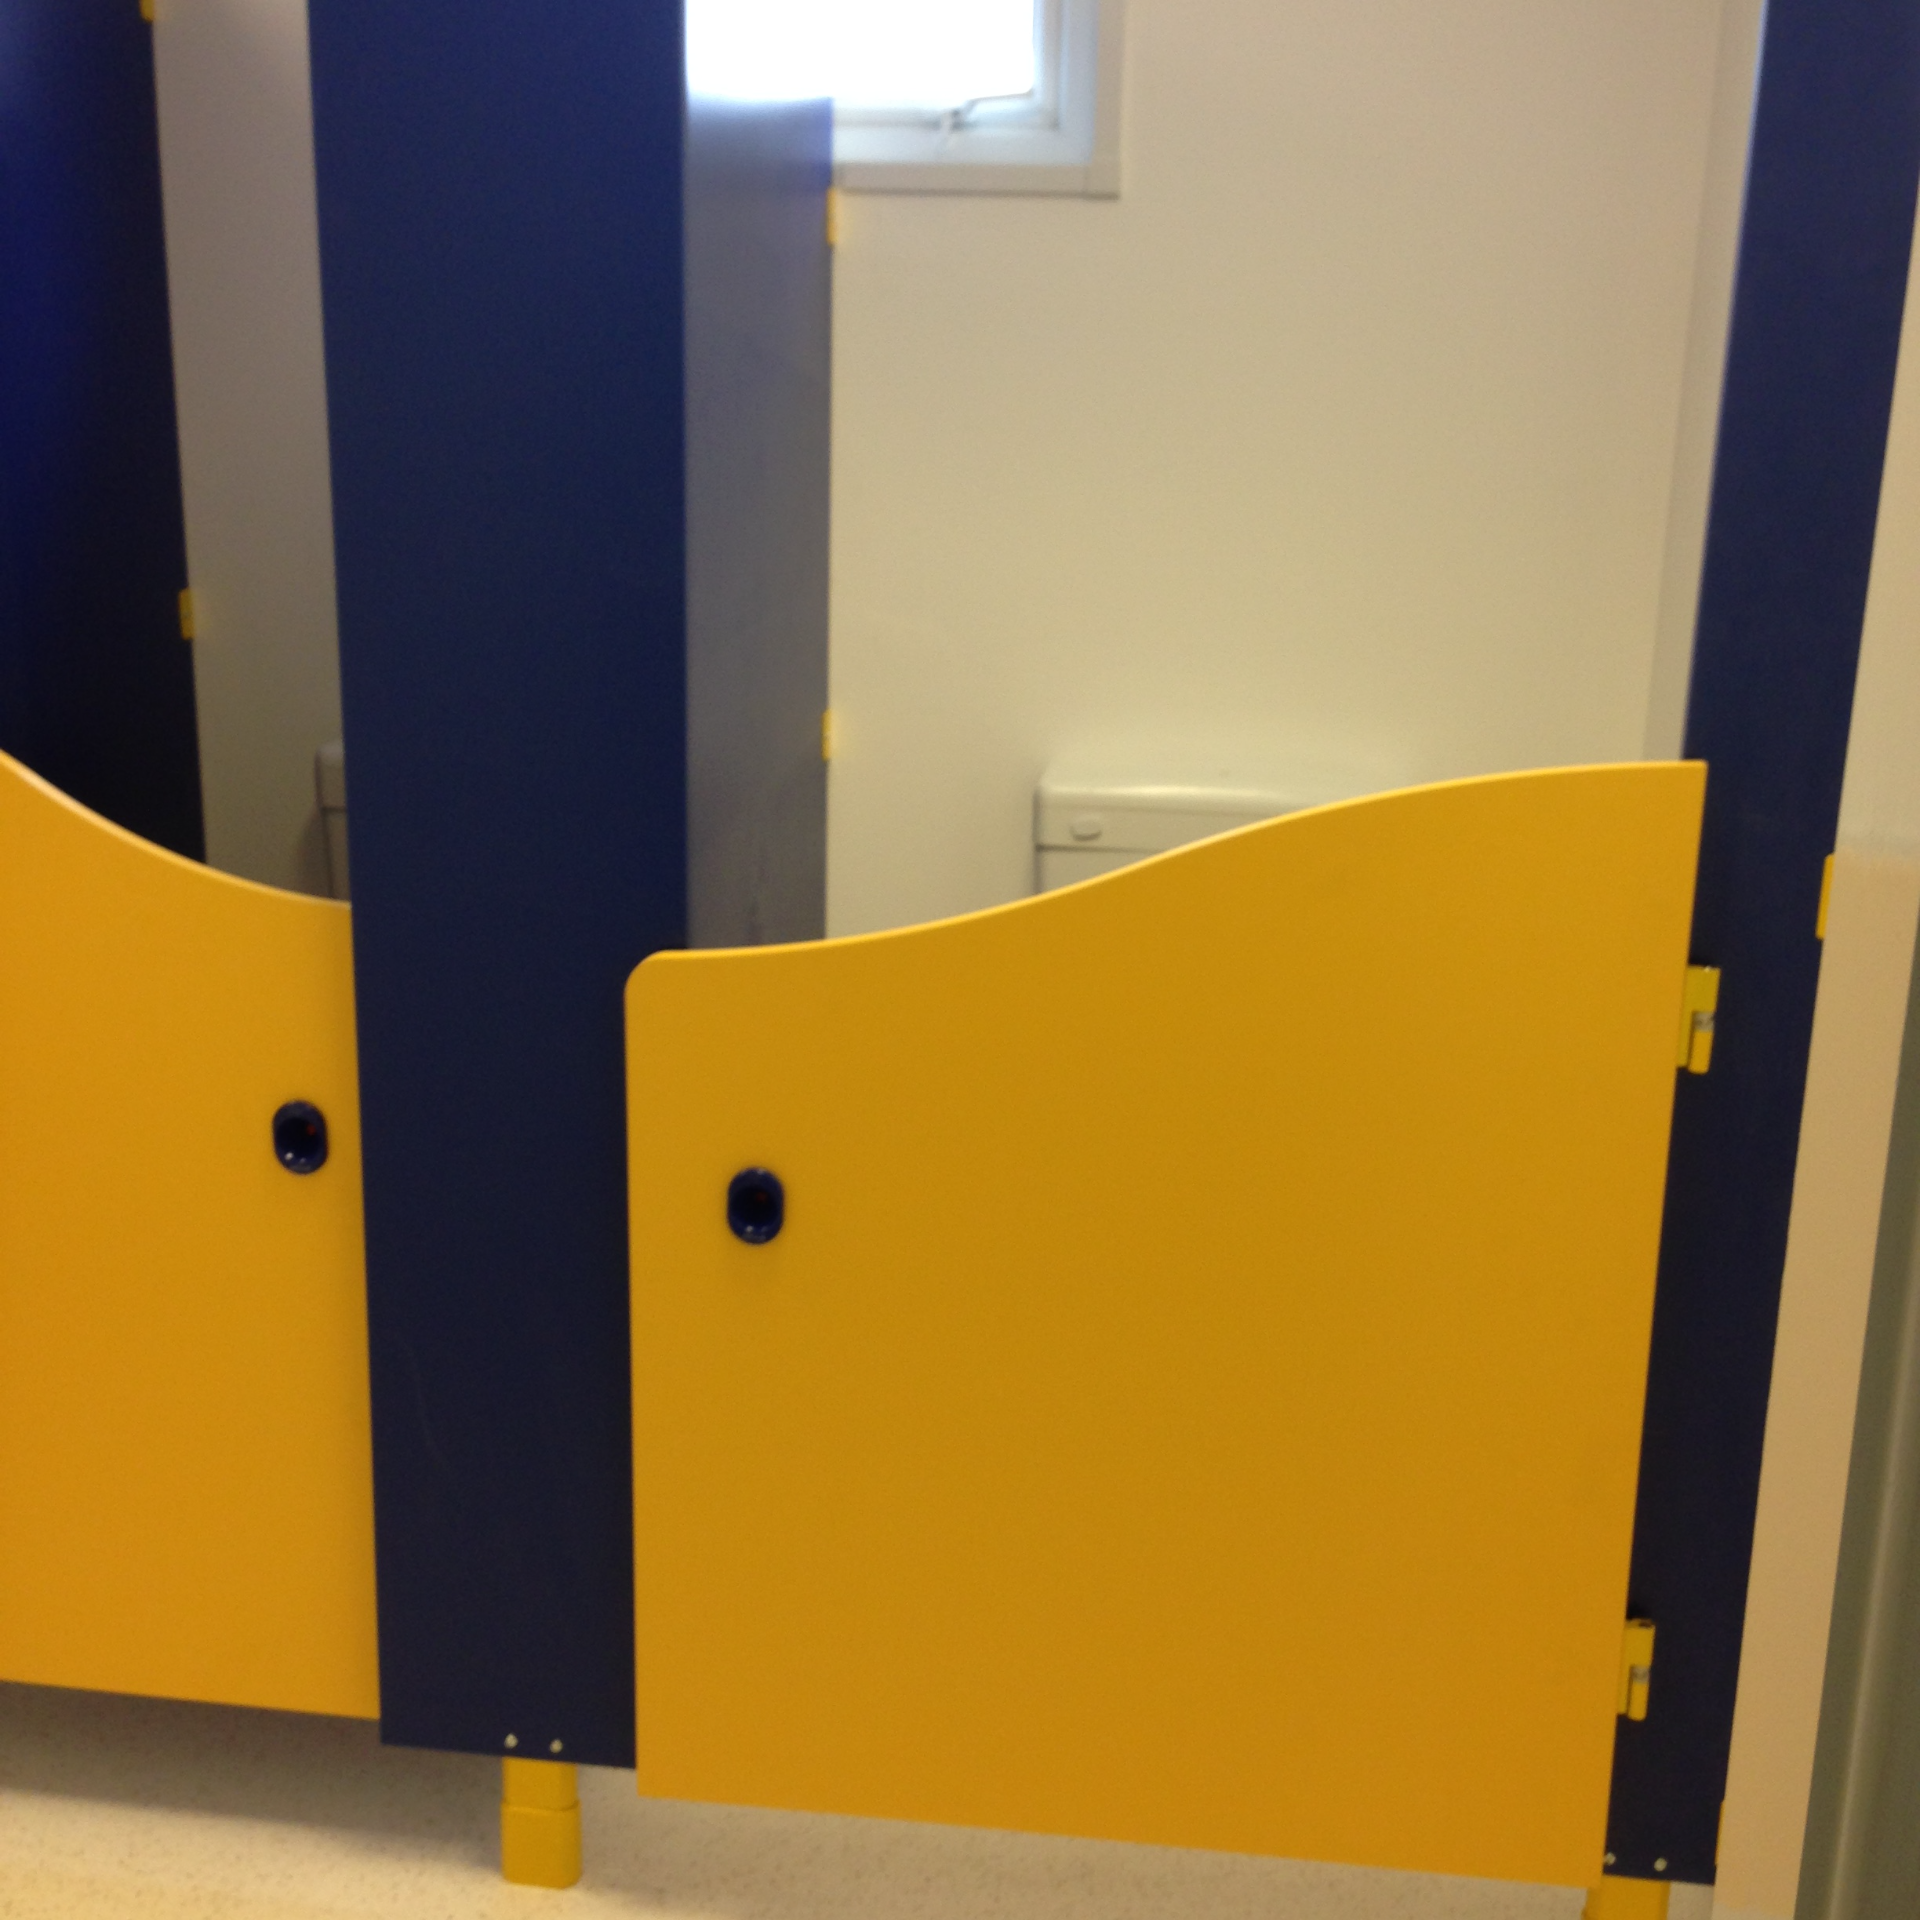 Blue & Yellow Room Toilets